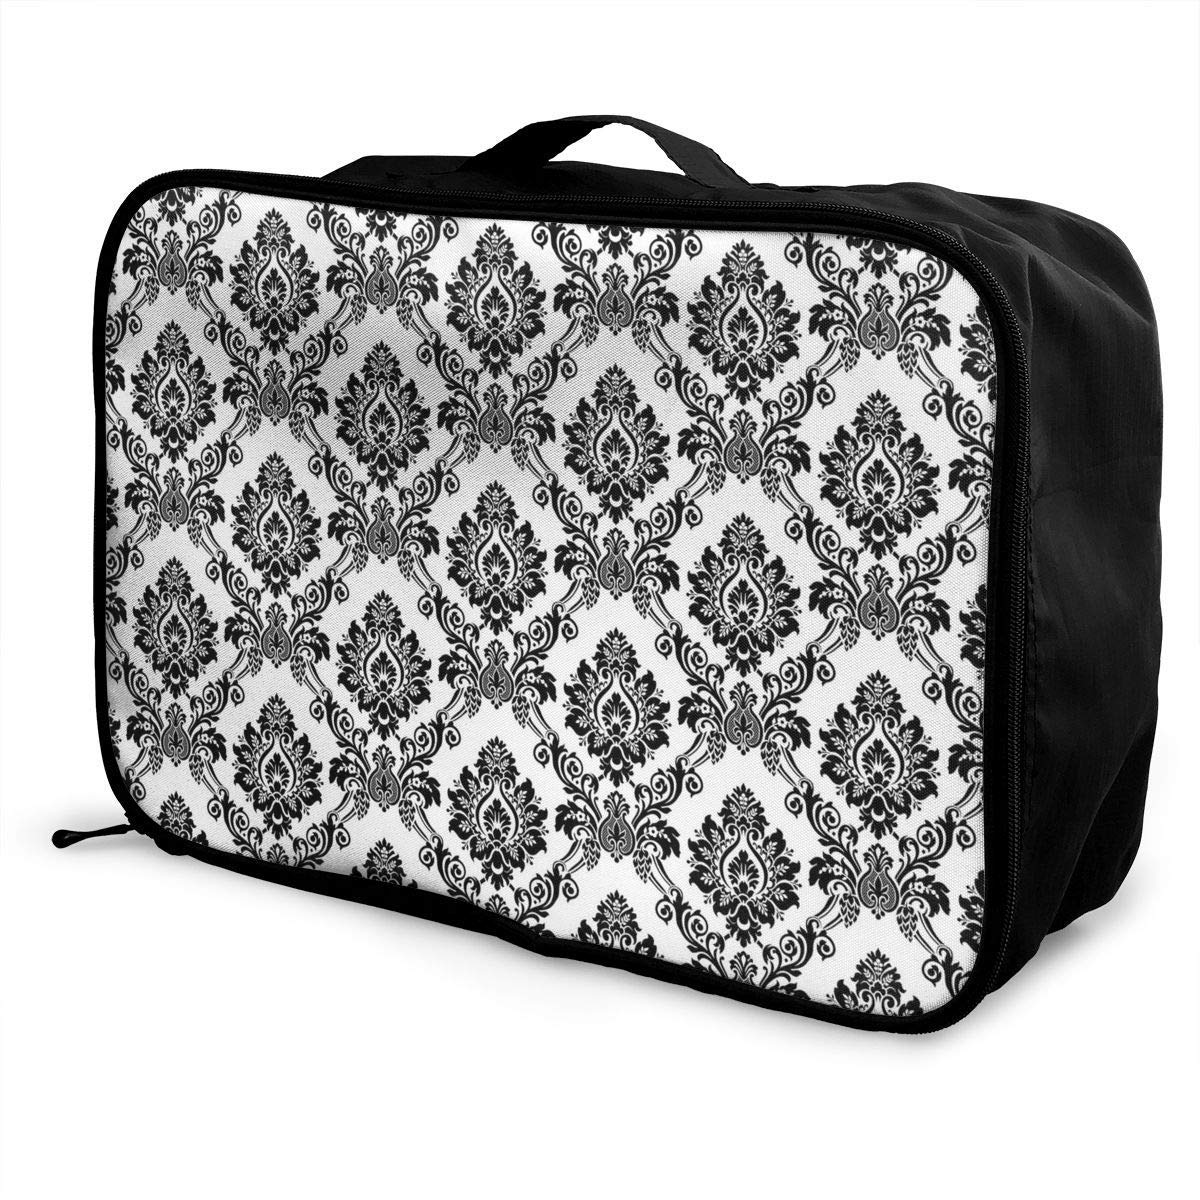 Damask Antique Classical Damask Flowers Pattern Traditional Artwork Travel Lightweight Waterproof Foldable Storage Carry Luggage Duffle Tote Bag JTRVW Luggage Bags for Travel